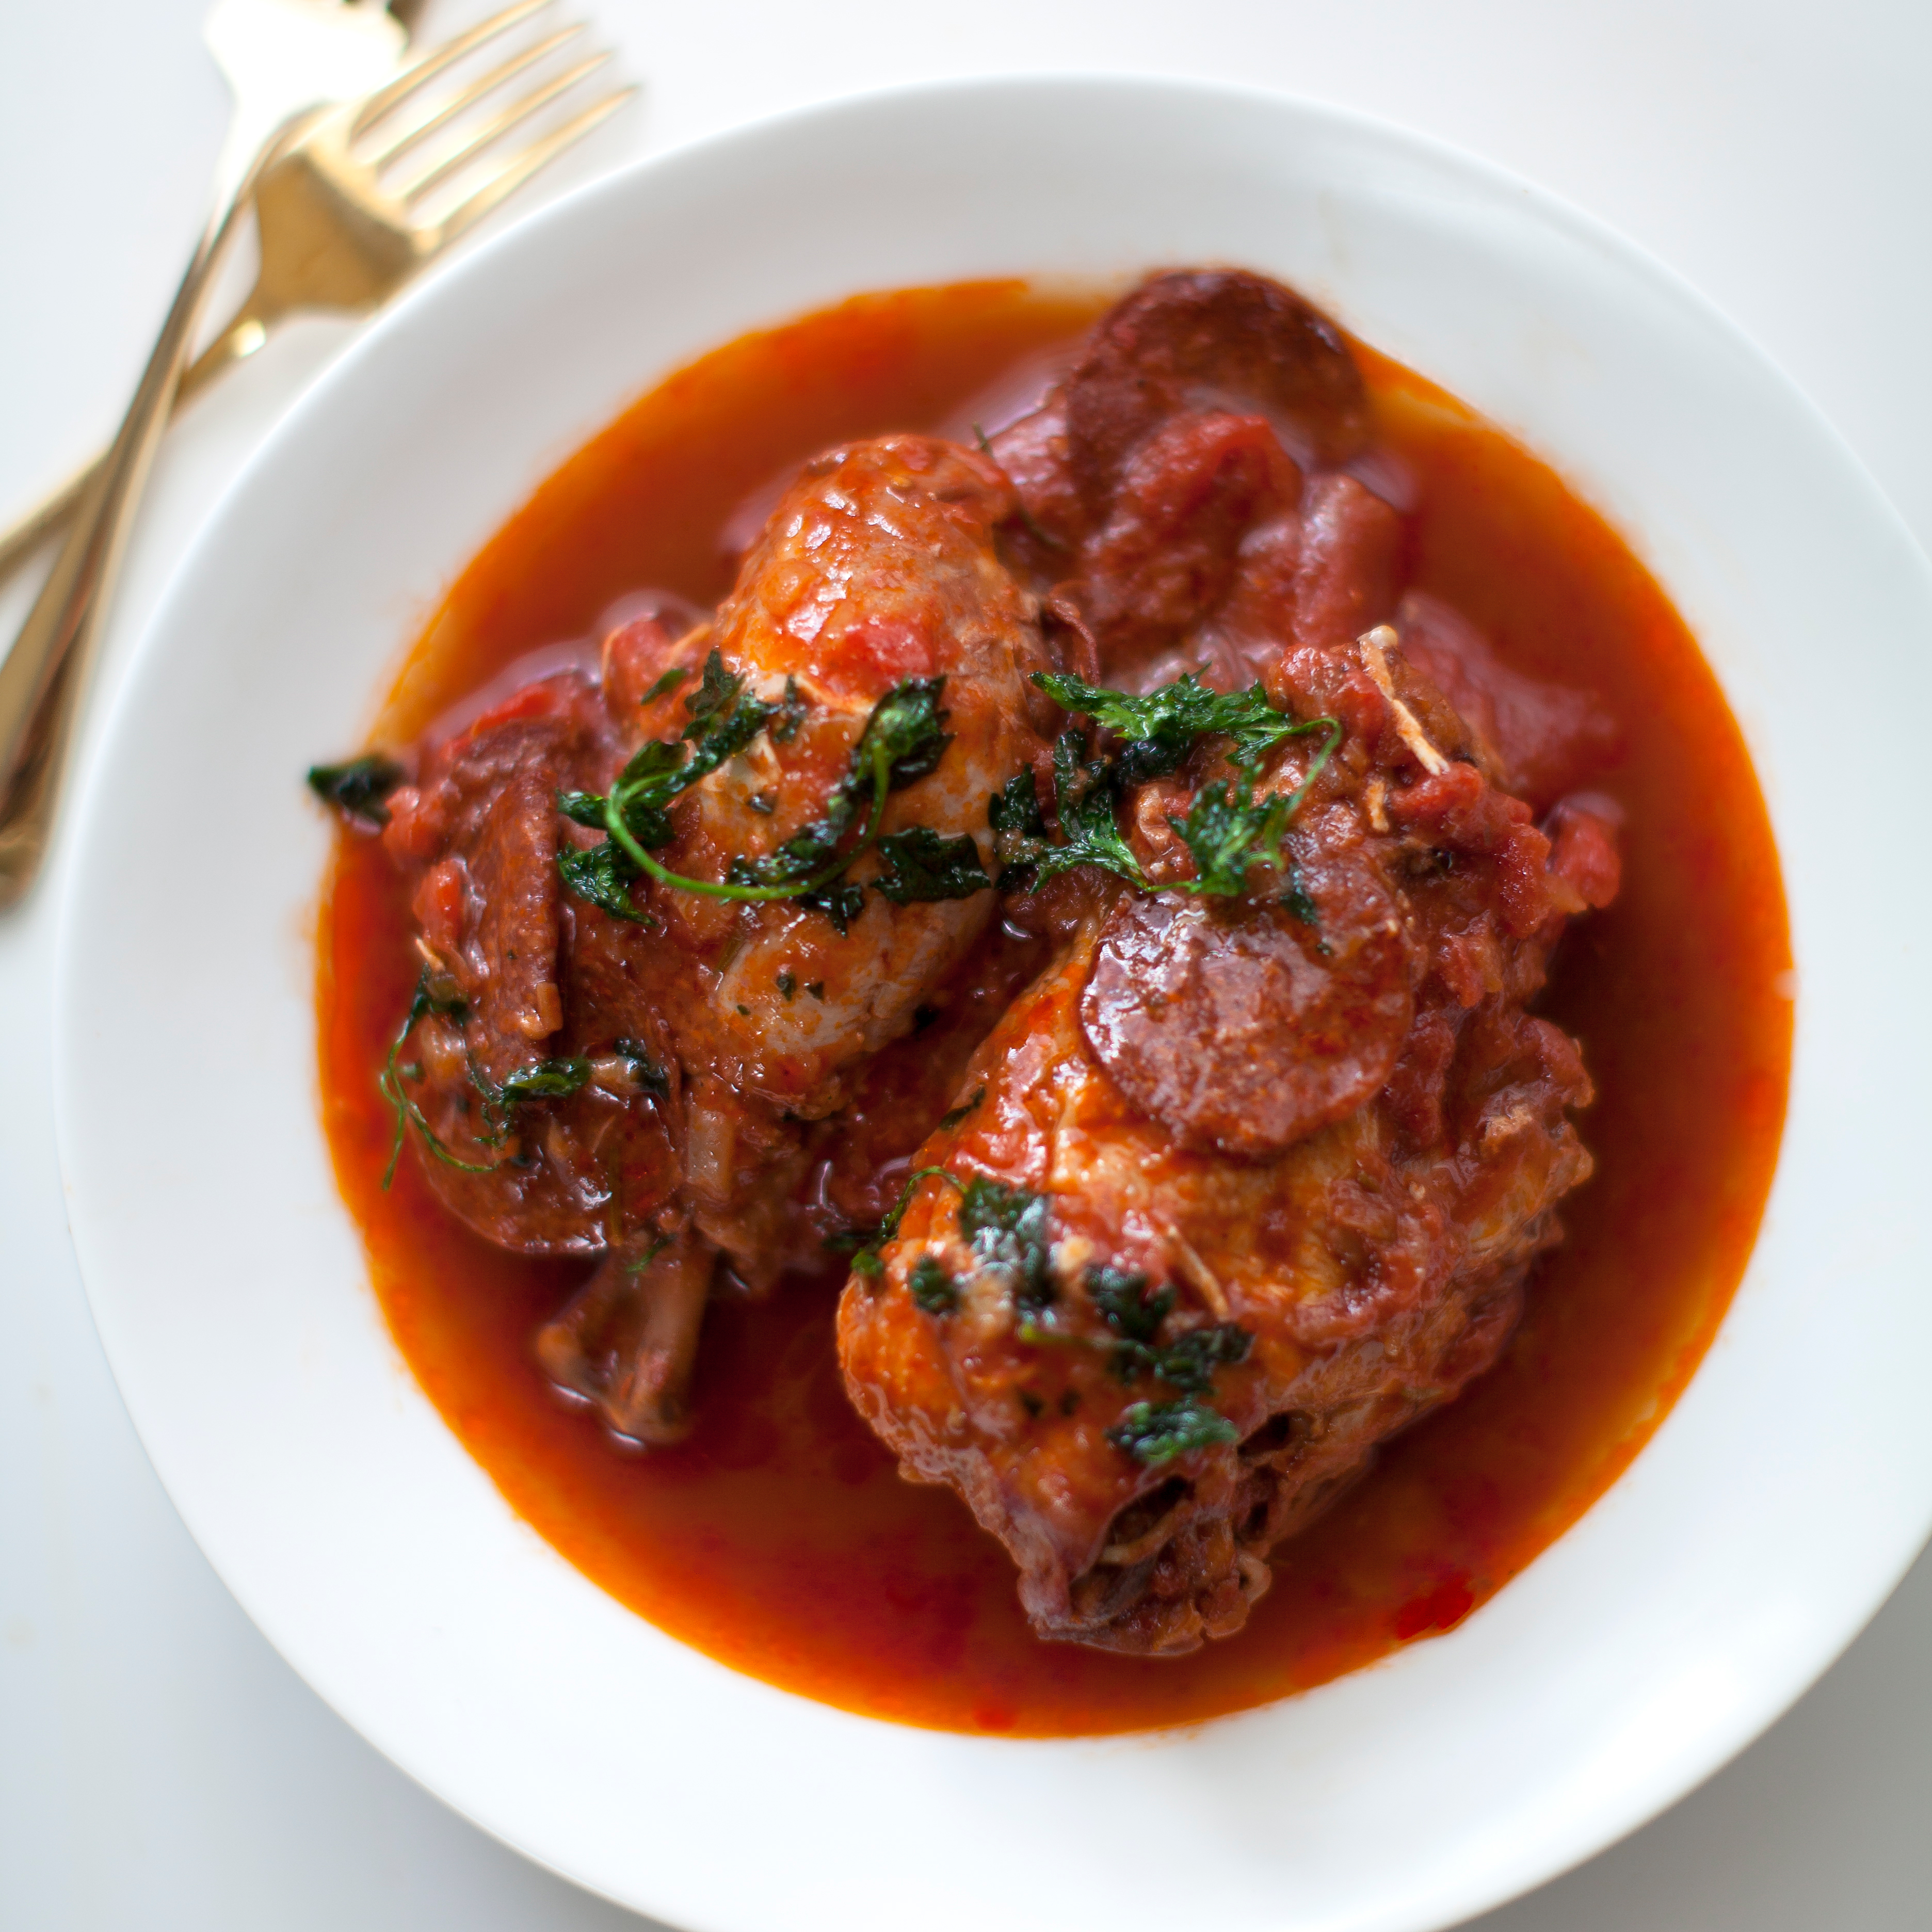 Pepperoni-Braised Chicken with Fried Herbs Recipe - Sarah ...